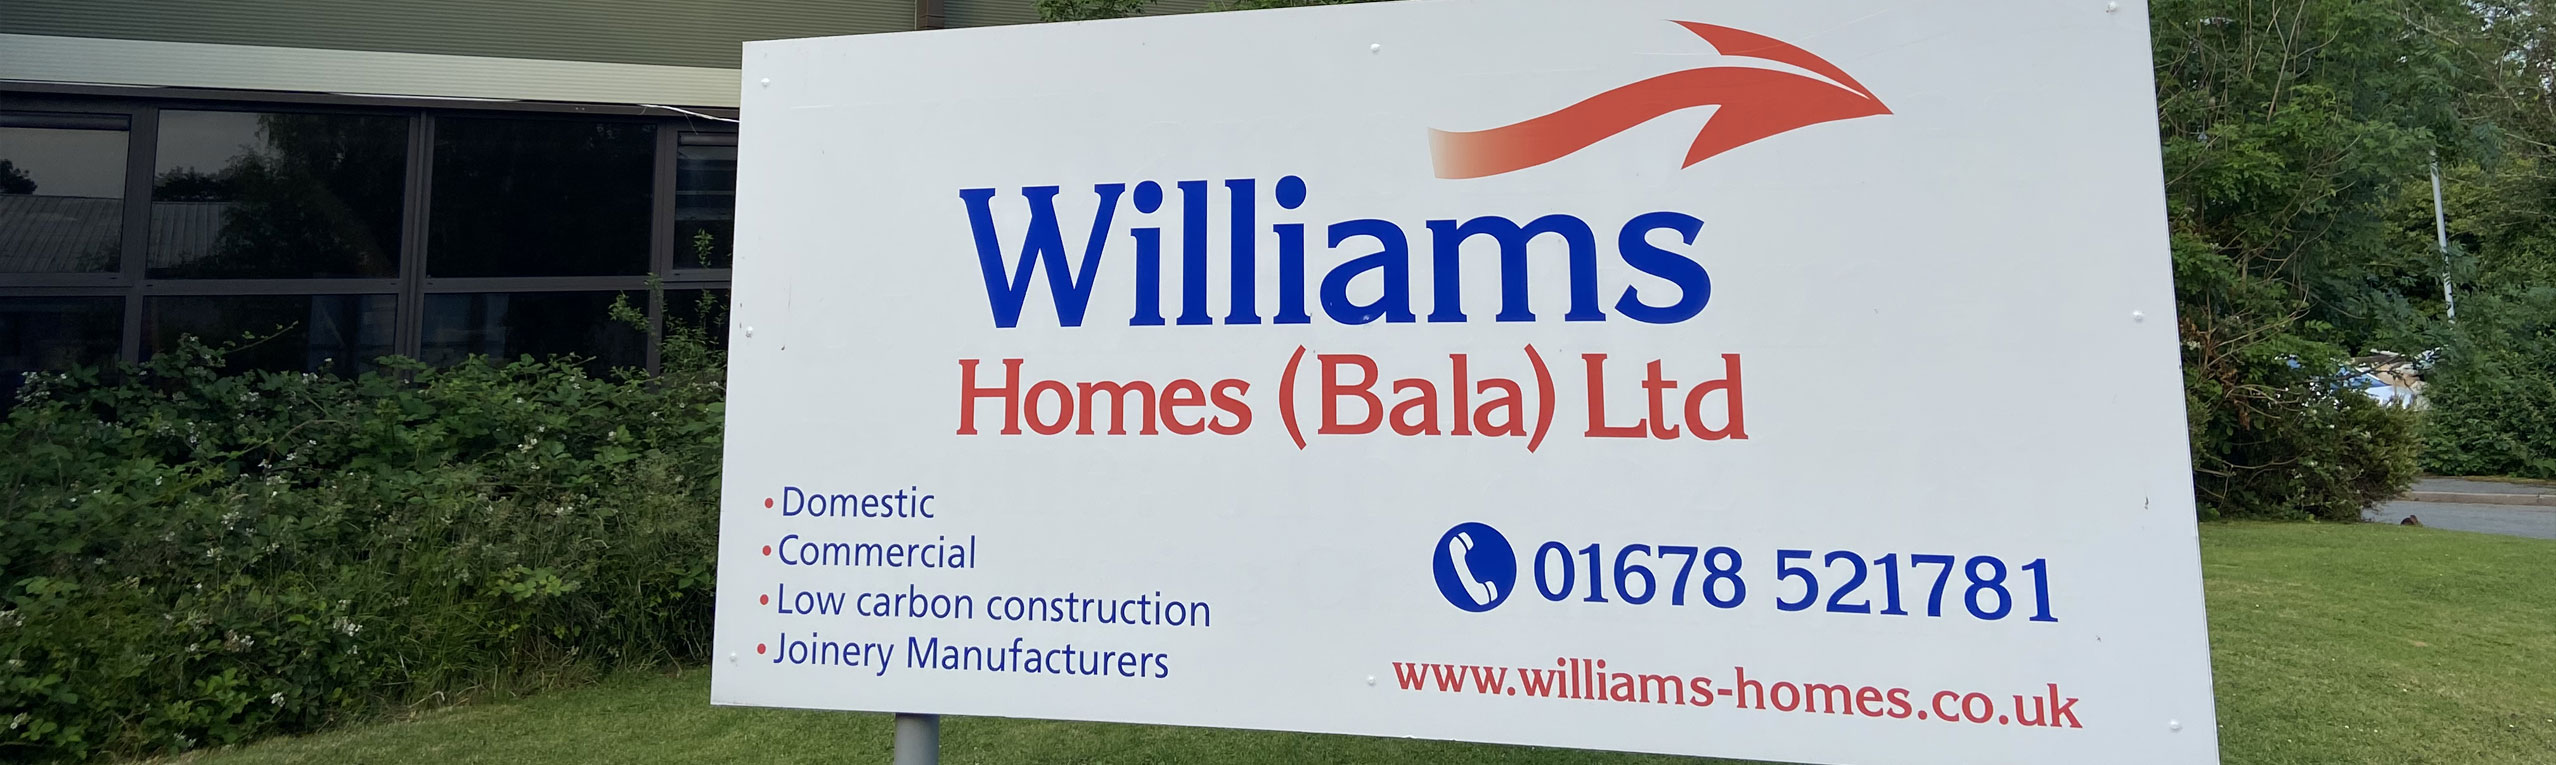 Arwydd Williams Homes Bala Ltd